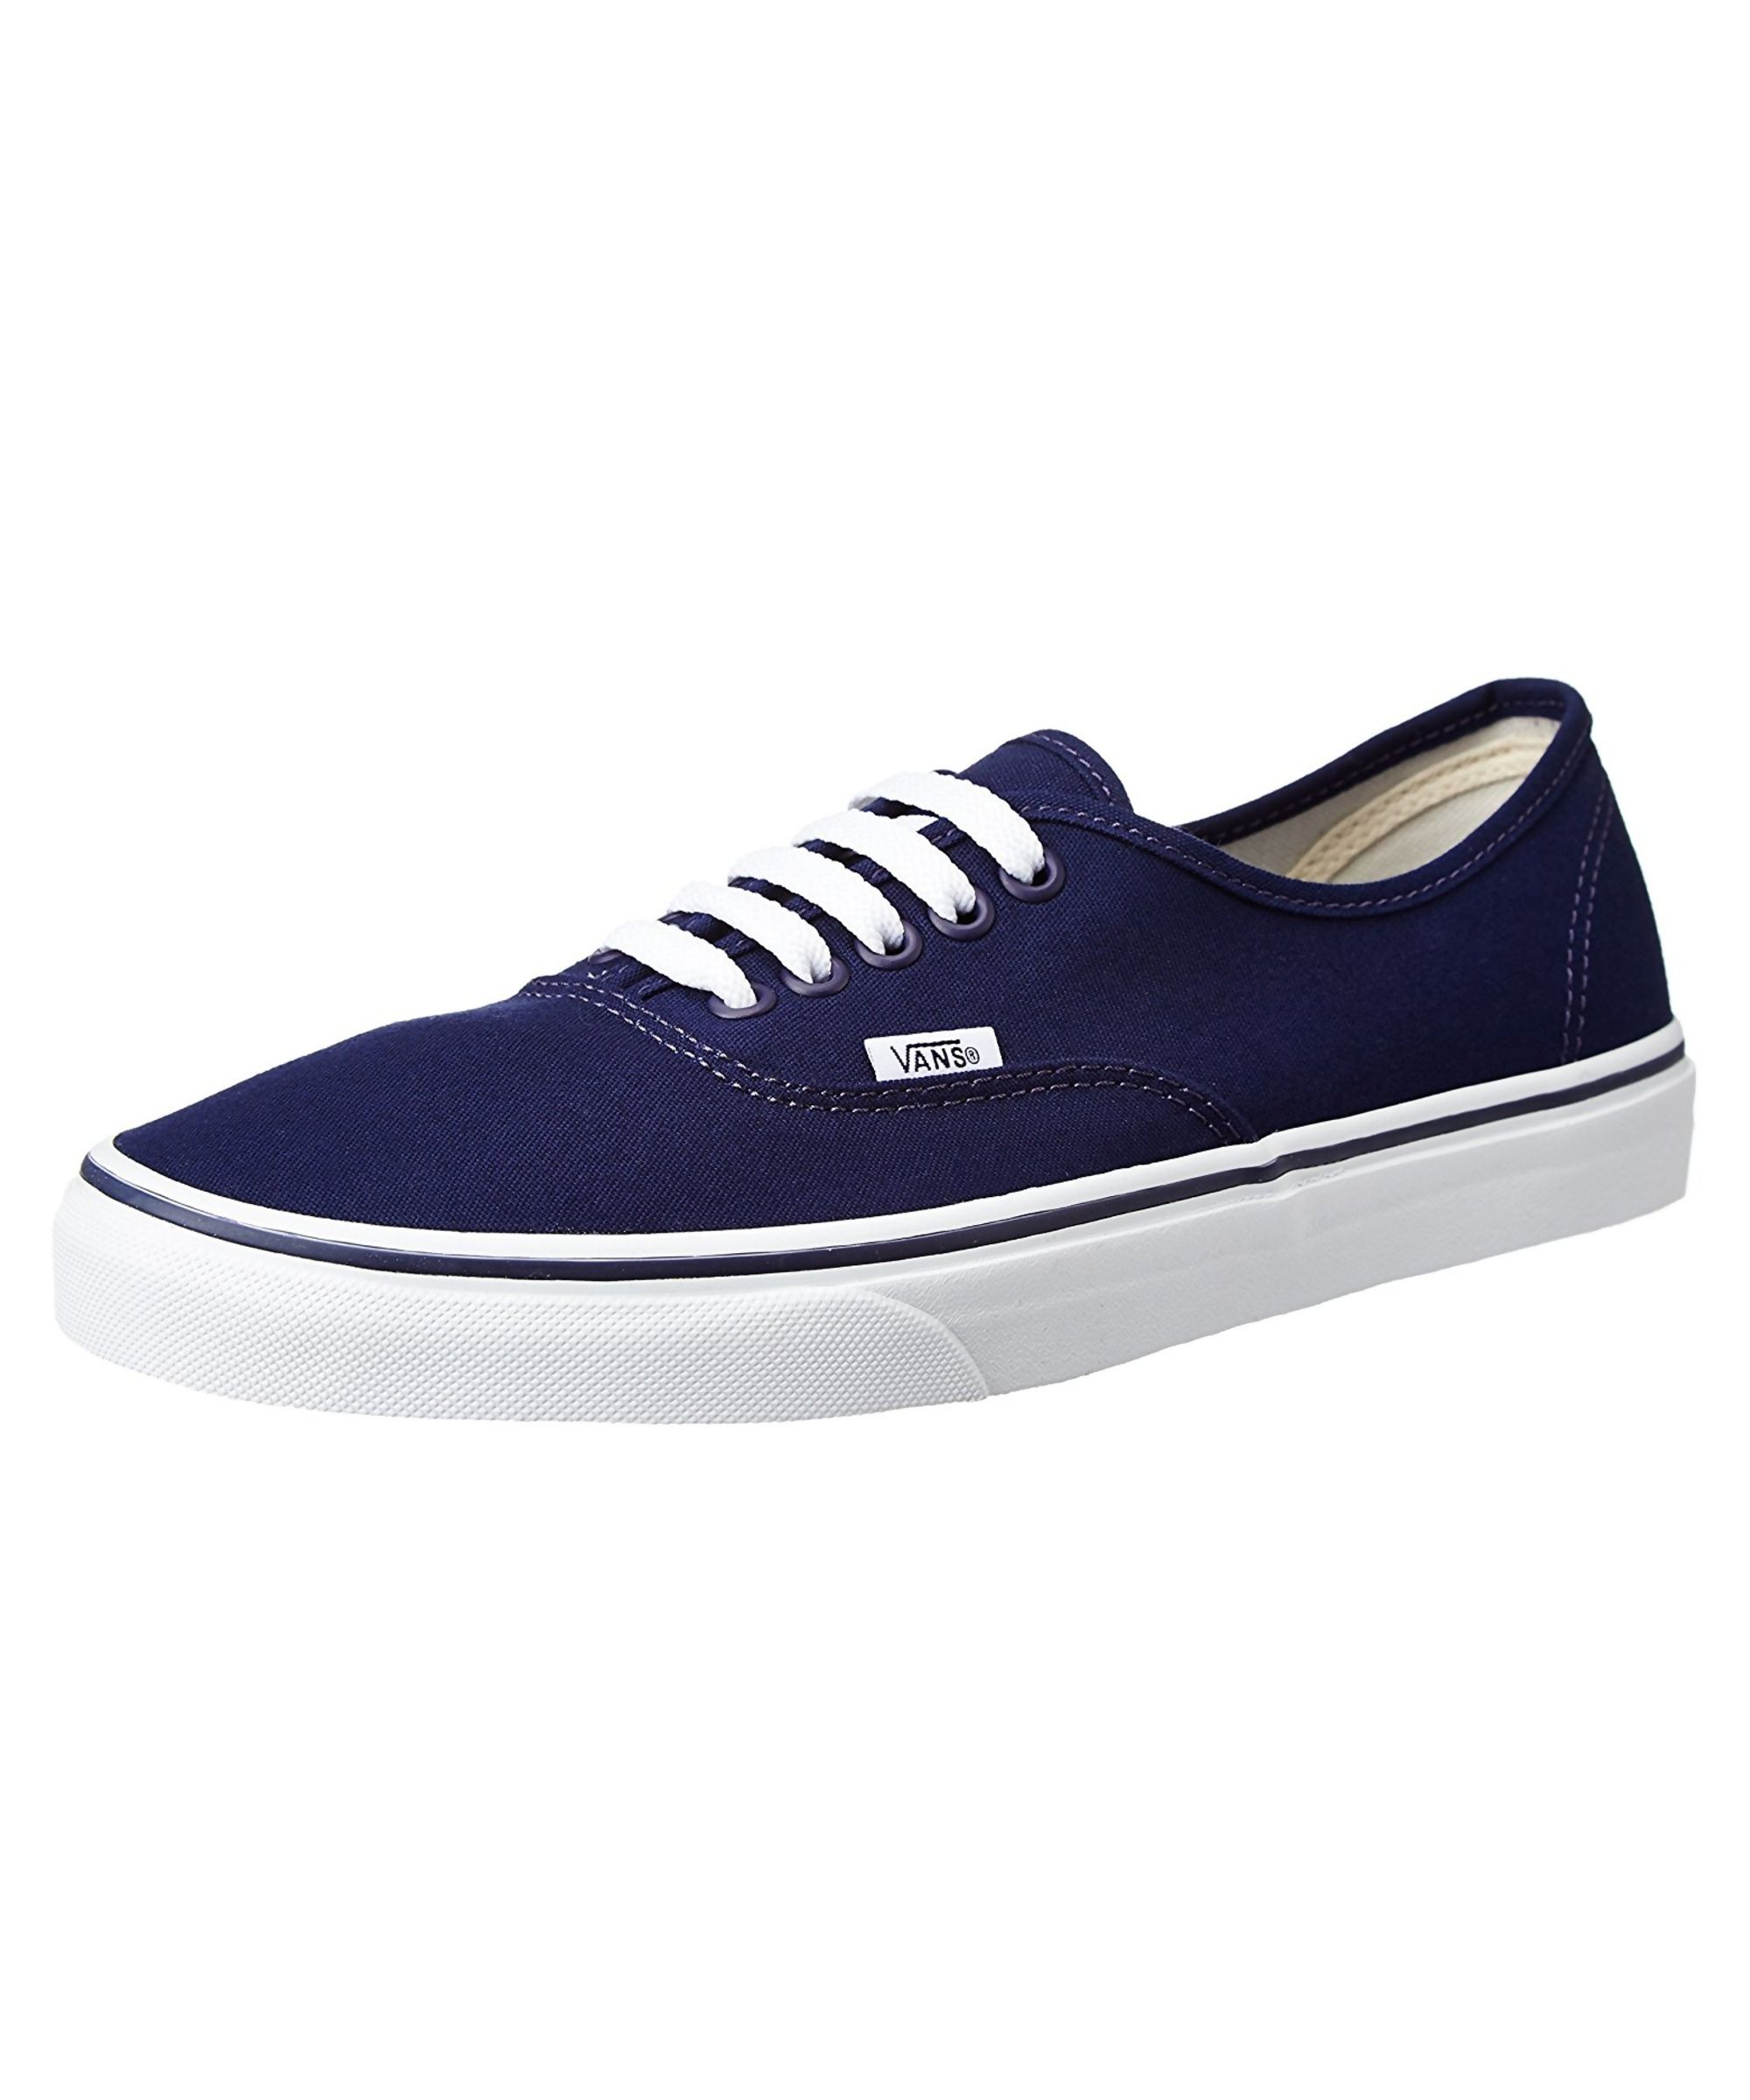 100% authentic cheap online Vans Womens Eclipse Low Top Lace... shop cheap online sale geniue stockist OuF5EFyA